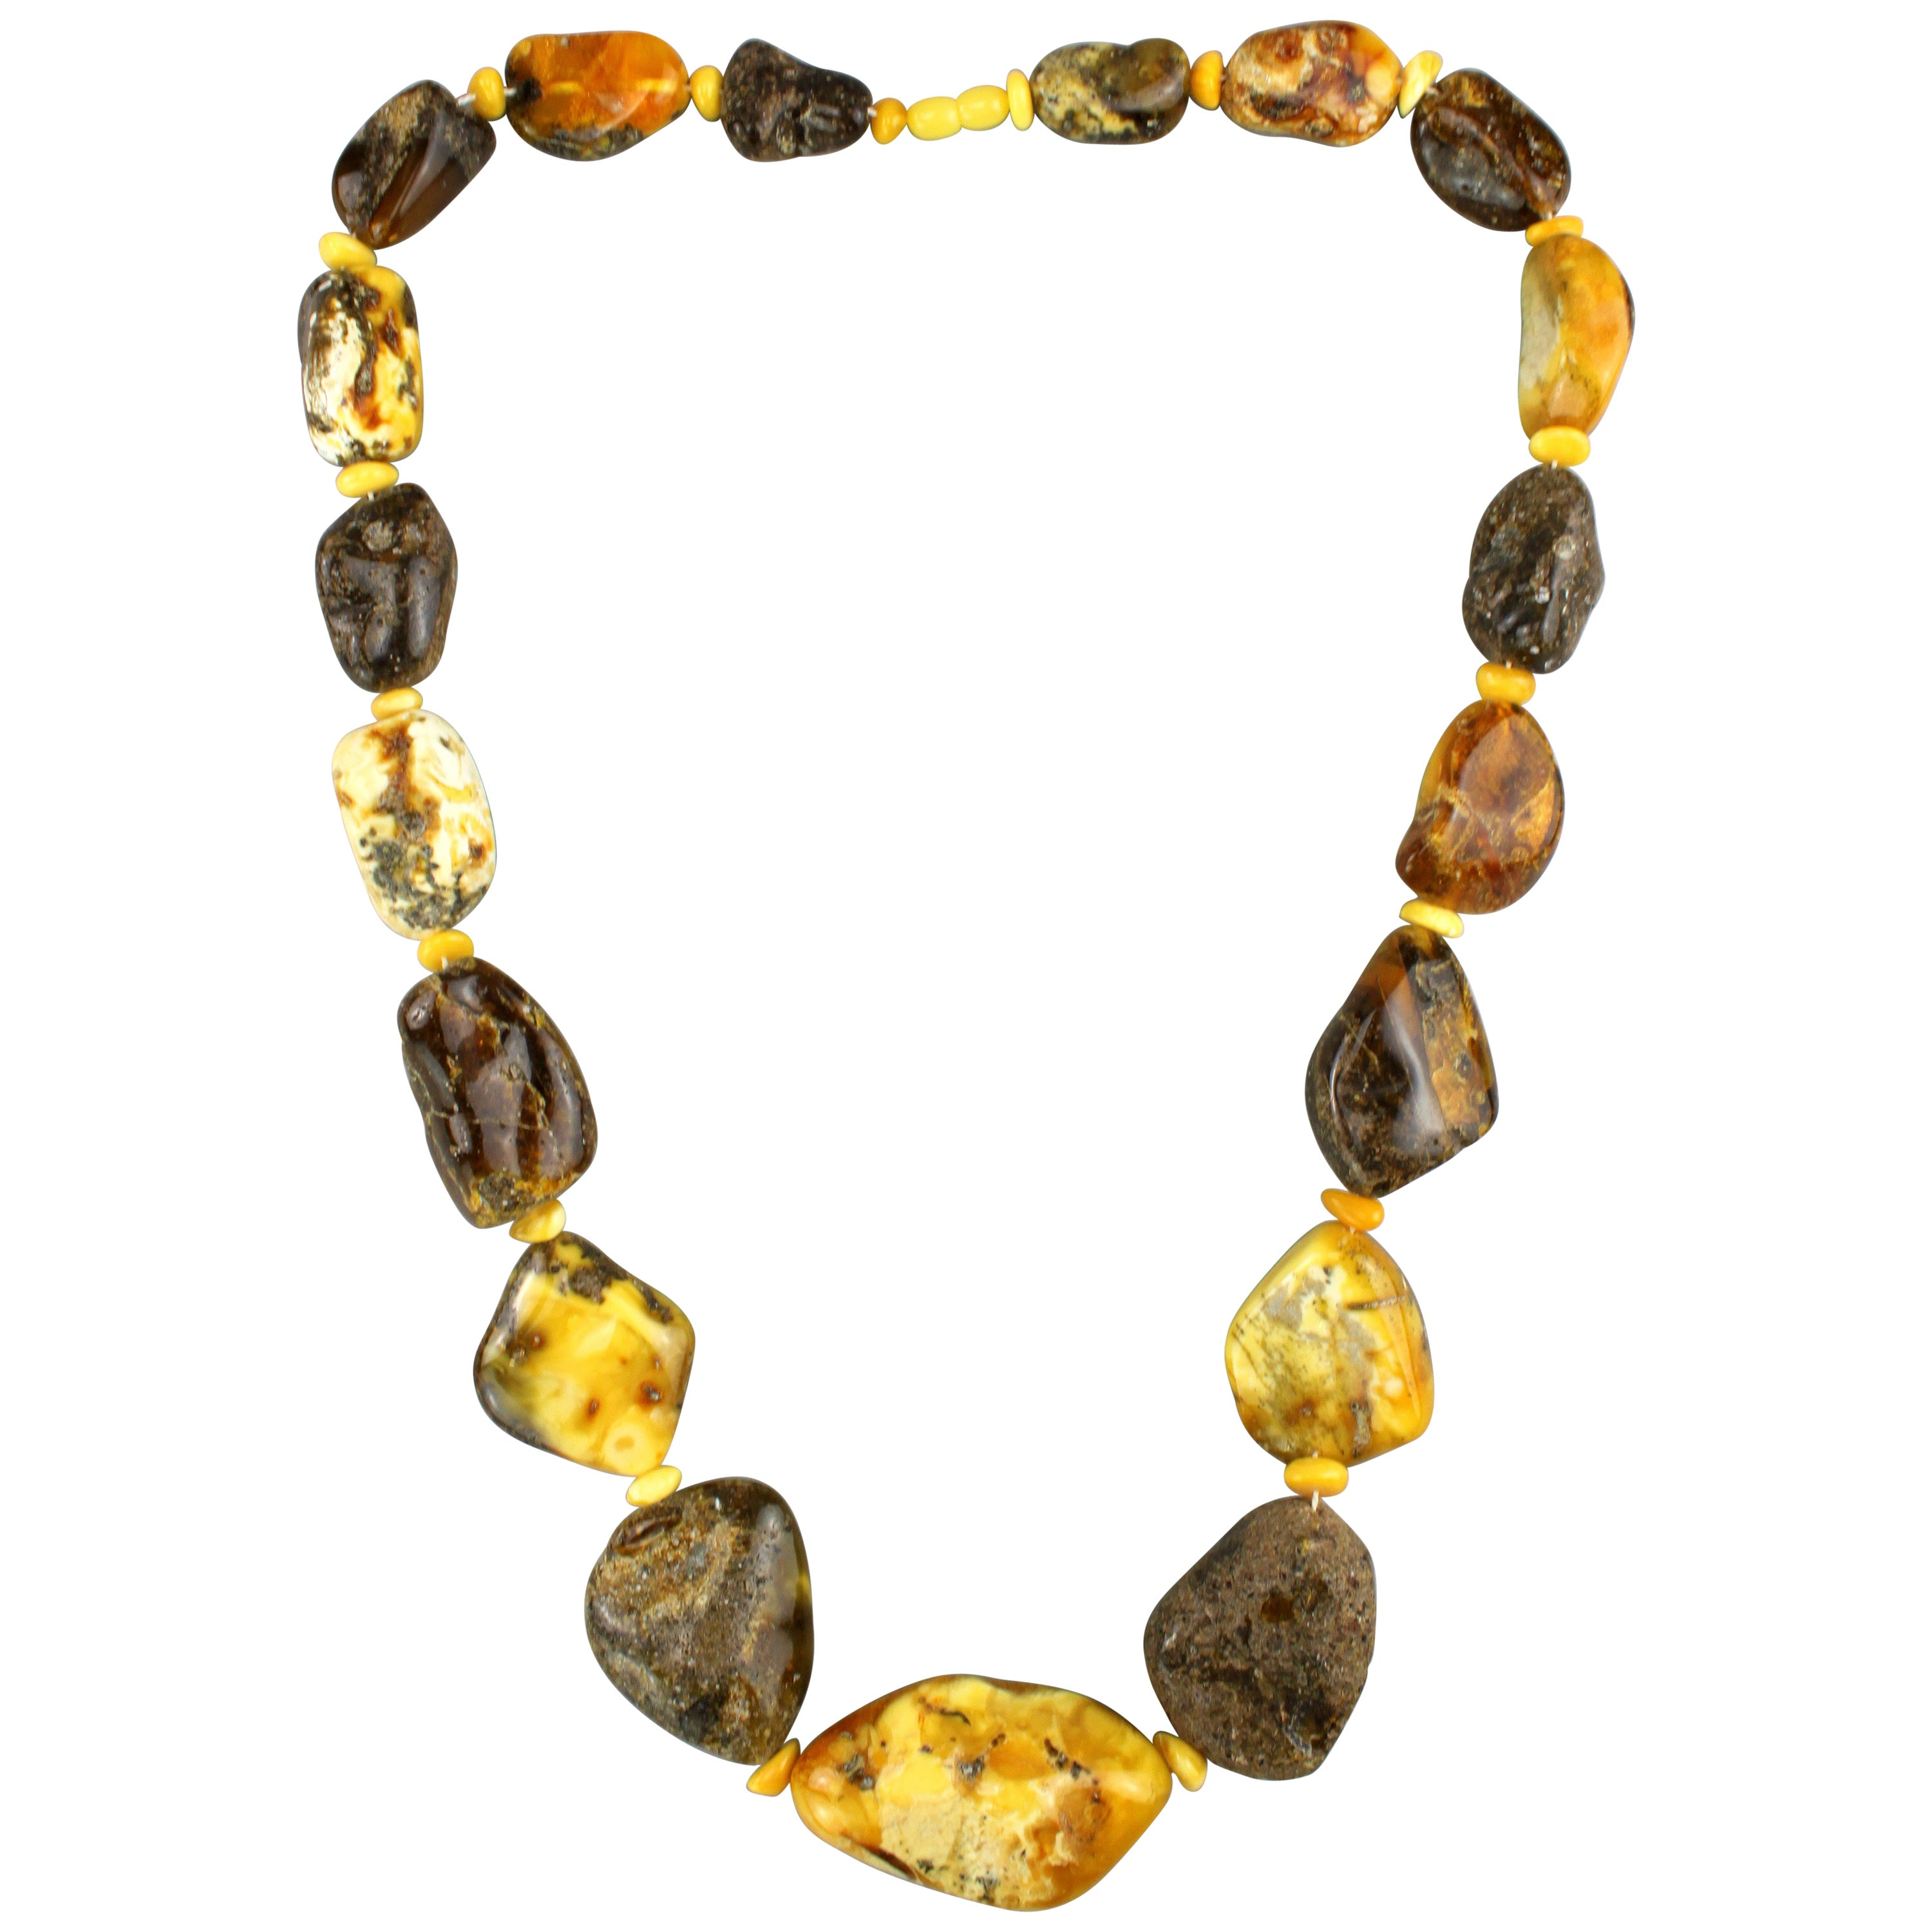 Loppe Natural Baltic Unpolished Amber Necklace